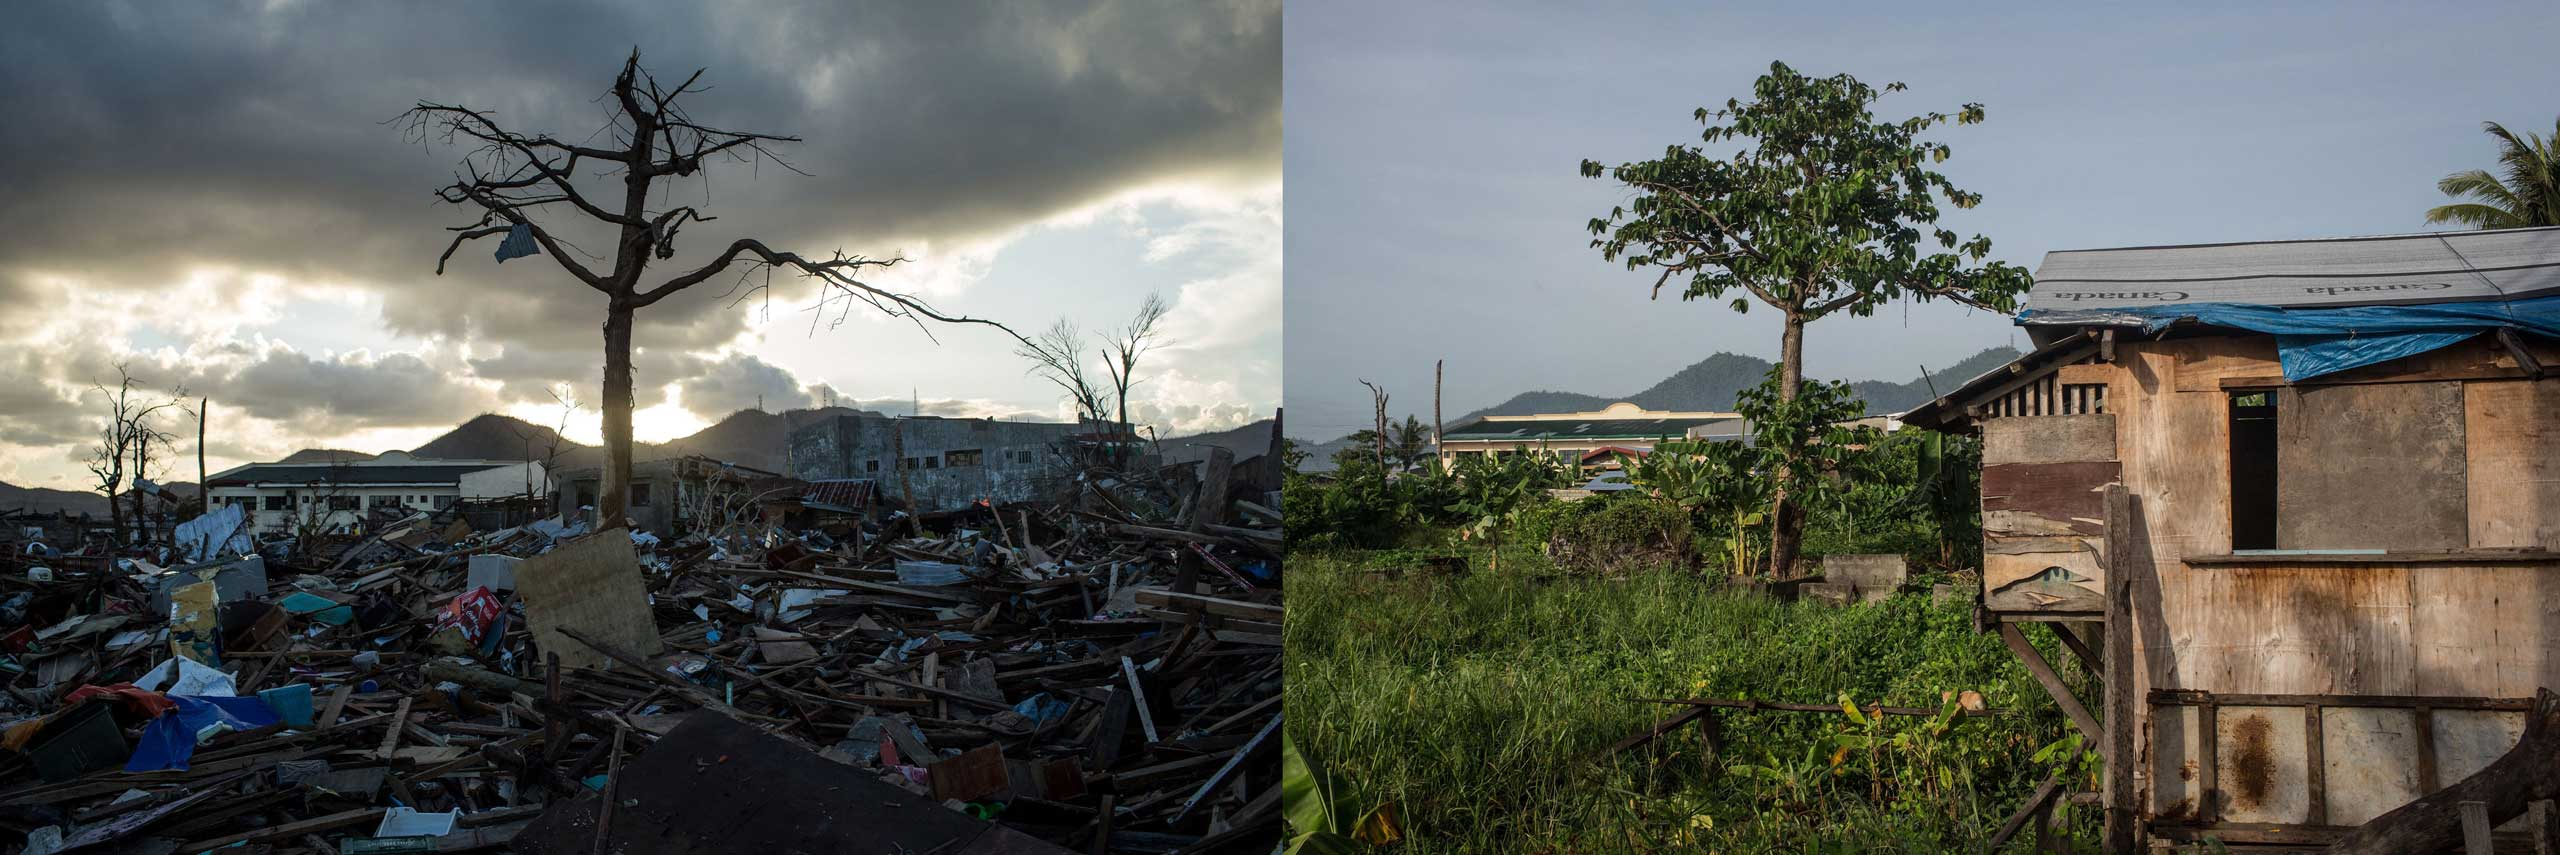 Before: A single tree is seen standing amid the rubble in Tacloban City following the recent super typhoon on Nov. 18, 2013 in Leyte, Philippines.After: View of residential area in Magallanes district one year after Typhoon Haiyan on Nov. 4, 2014.